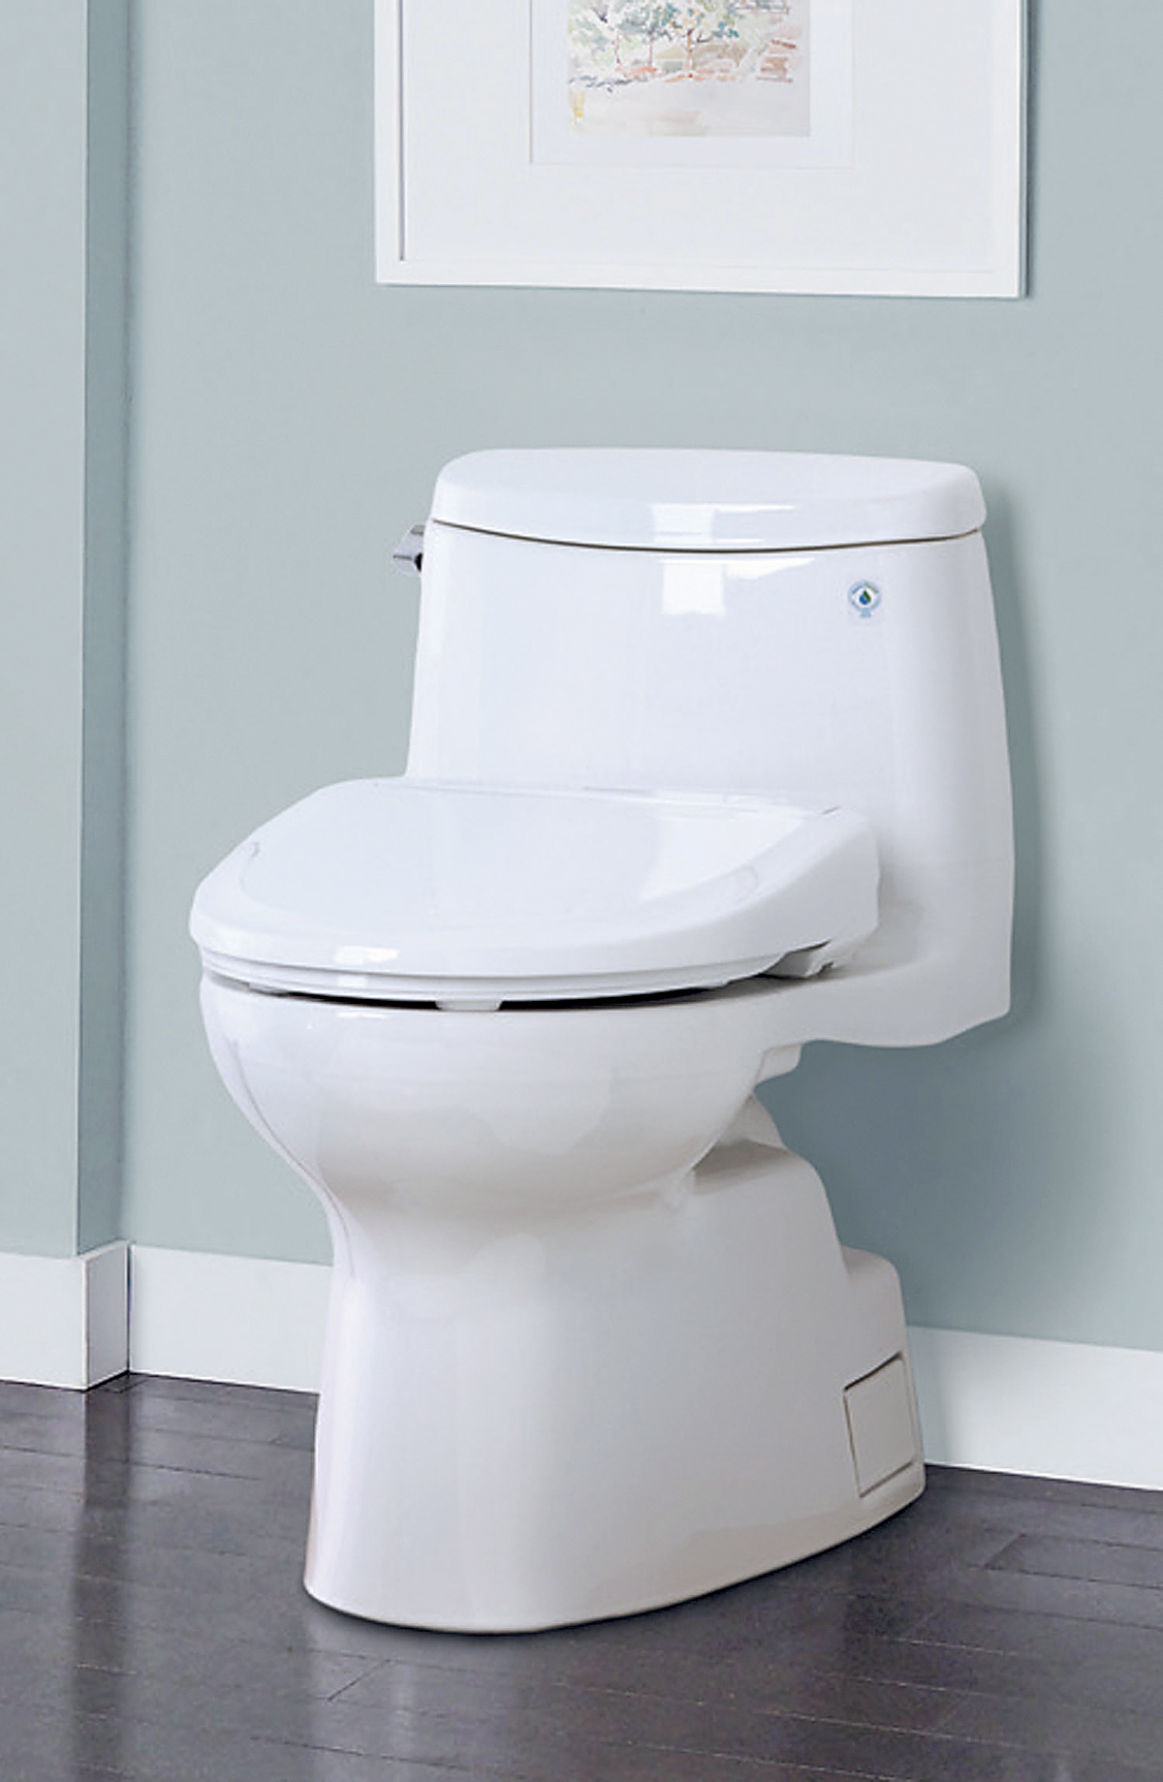 High-tech toilet seats: no hands or paper required | Lifestyles ...